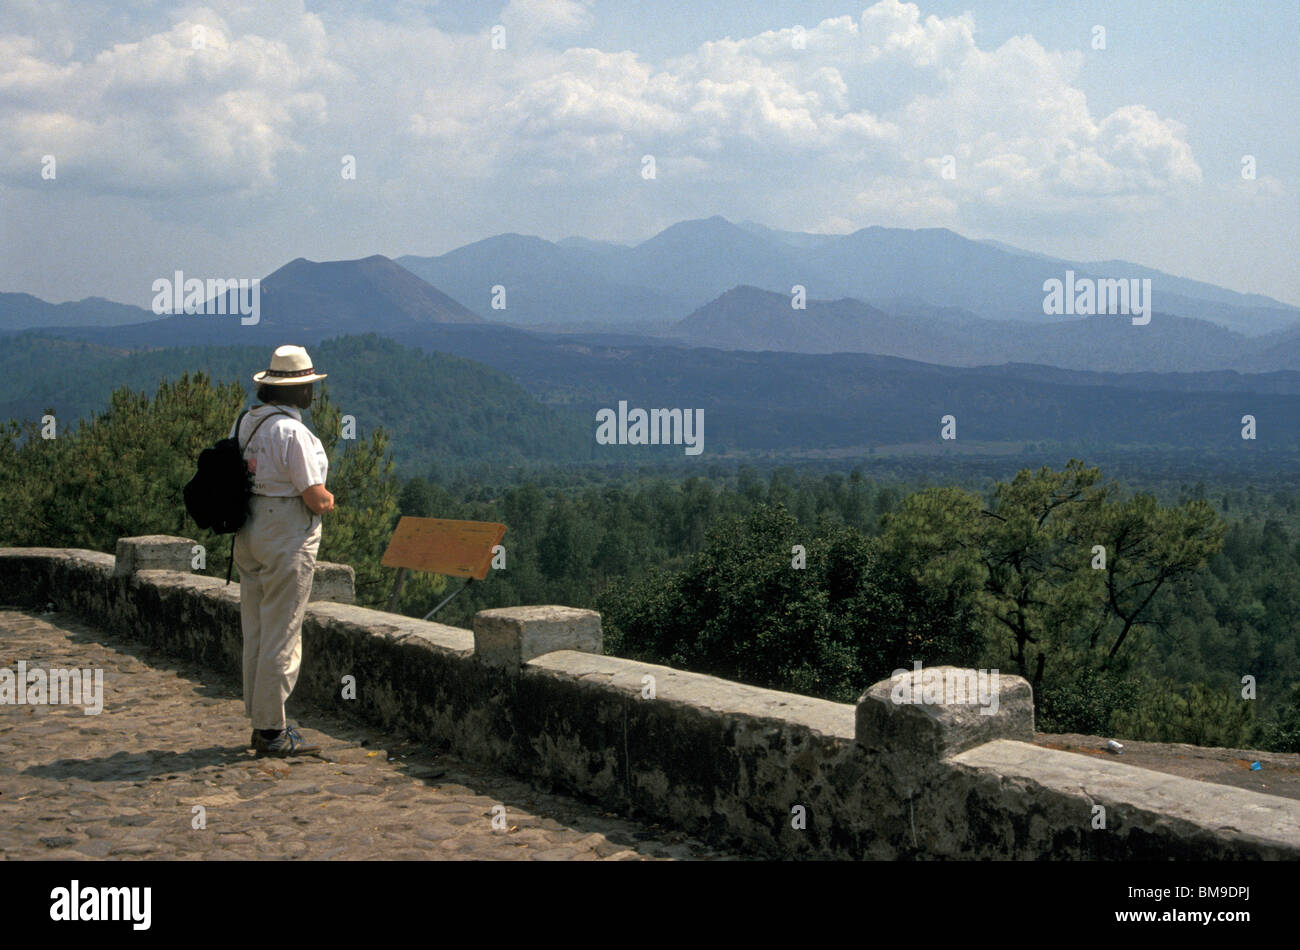 Tourist looking out over lava fields towards Volcan Paricutin volcano, Angahuan, Michoacan, Mexico - Stock Image